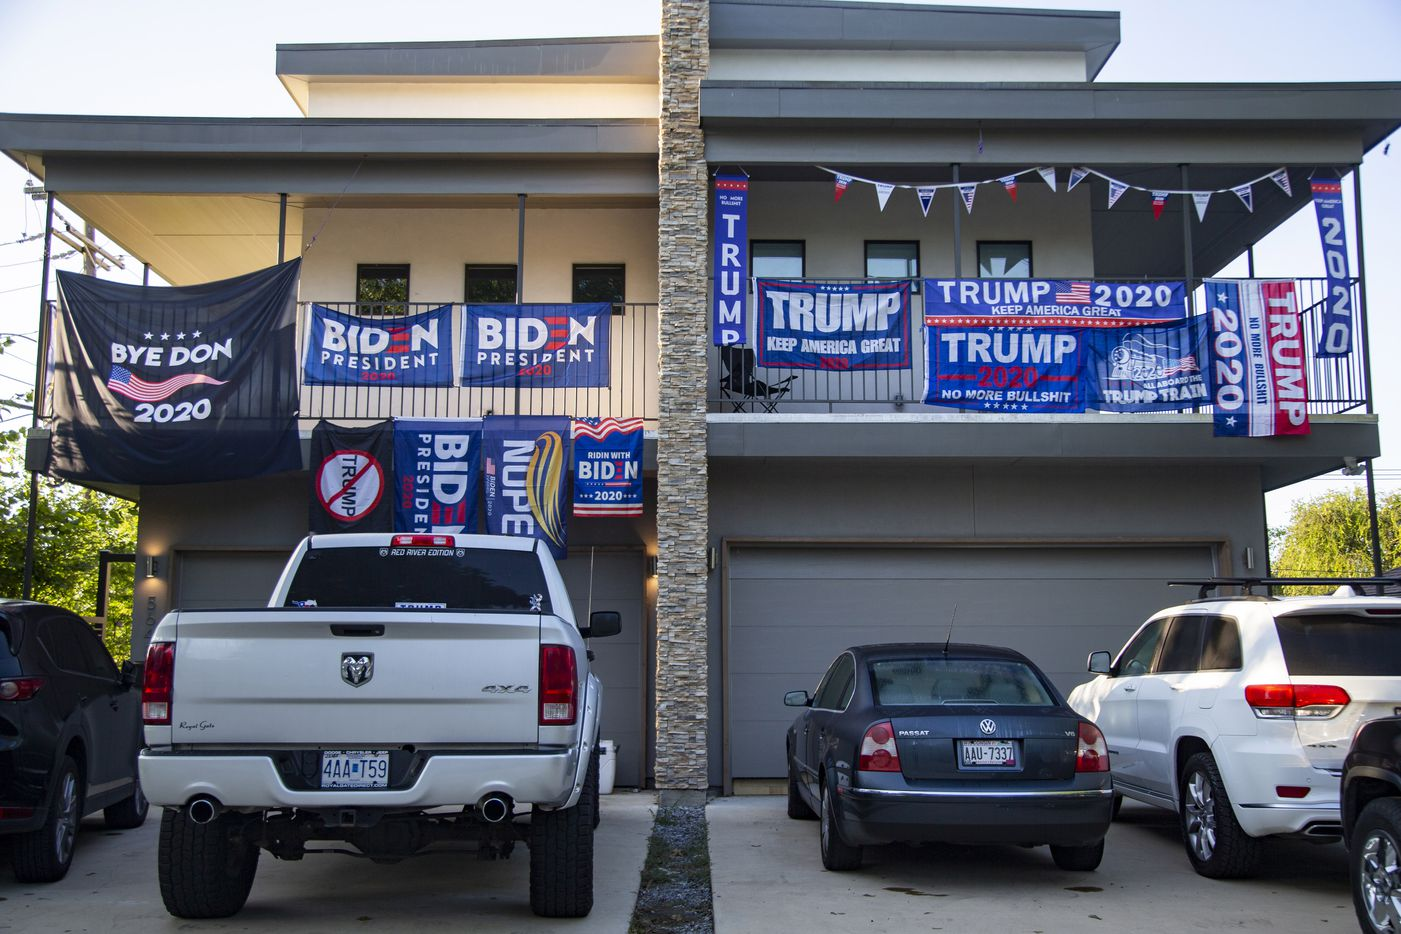 Neighbors in a two-story apartment have competing Biden and Trump banners draped over their balconies at the corner of Anita St and Greenville Ave in Dallas Friday, Sept. 25, 2020.